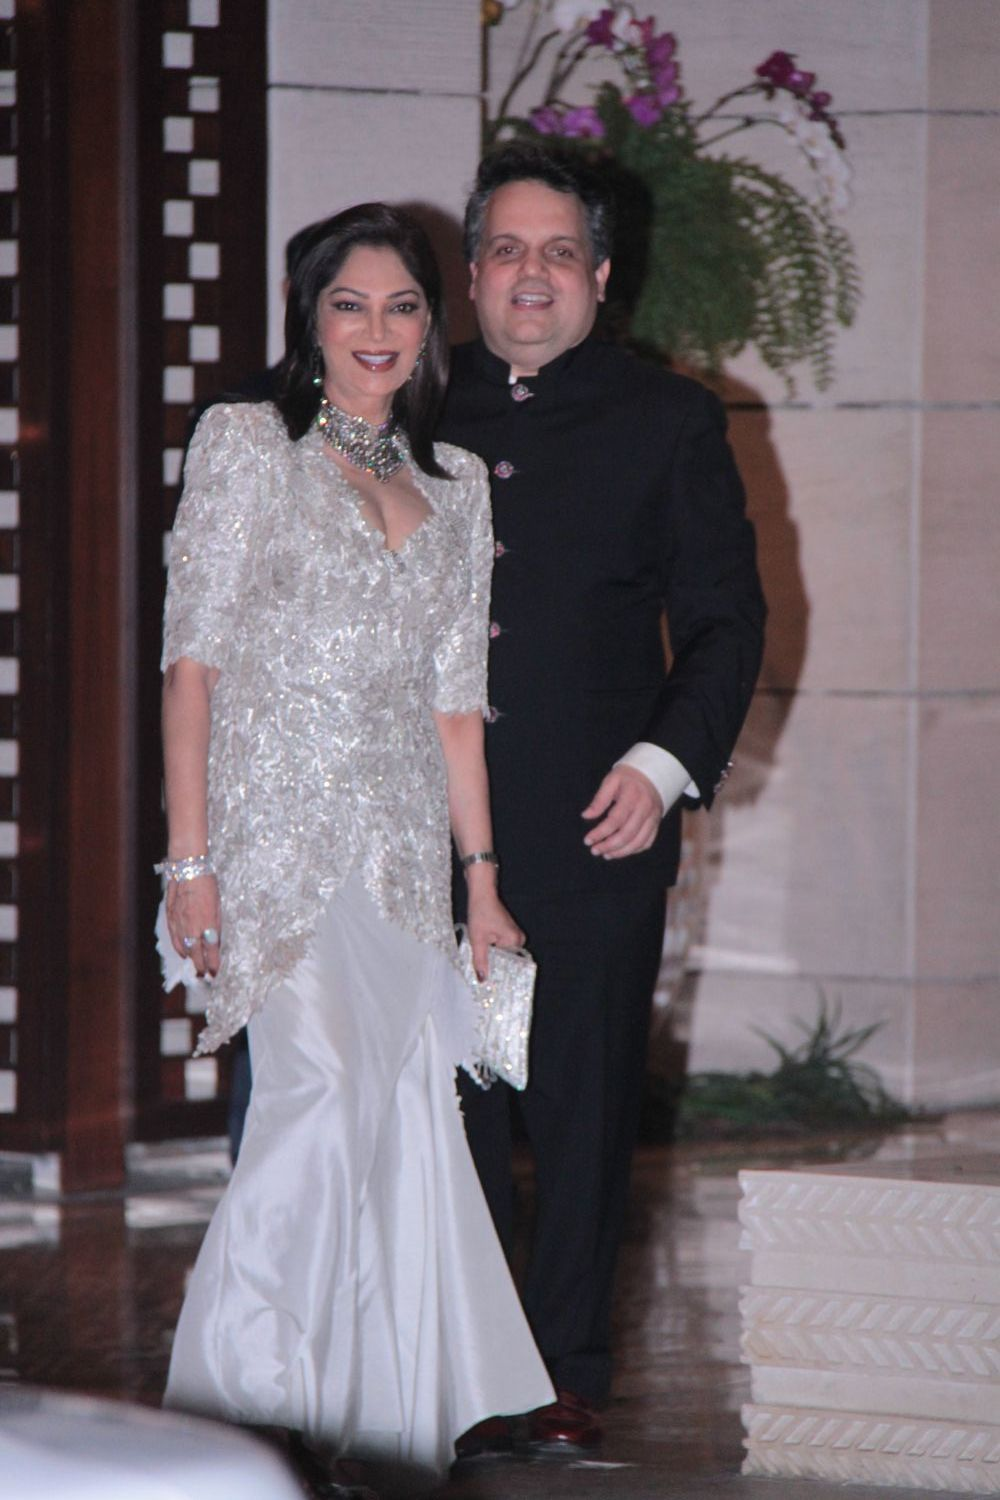 tfolftvyx1m02ghd.D.0.Simi-Garewal-with-designer-Sandeep-Khosla-at-Designers-Abu---Sandeep-book-INDIA-FANTASTIQUE-launch-party-hosted-by-Mukesh-Ambani-at-Antilla-in-Mumbai